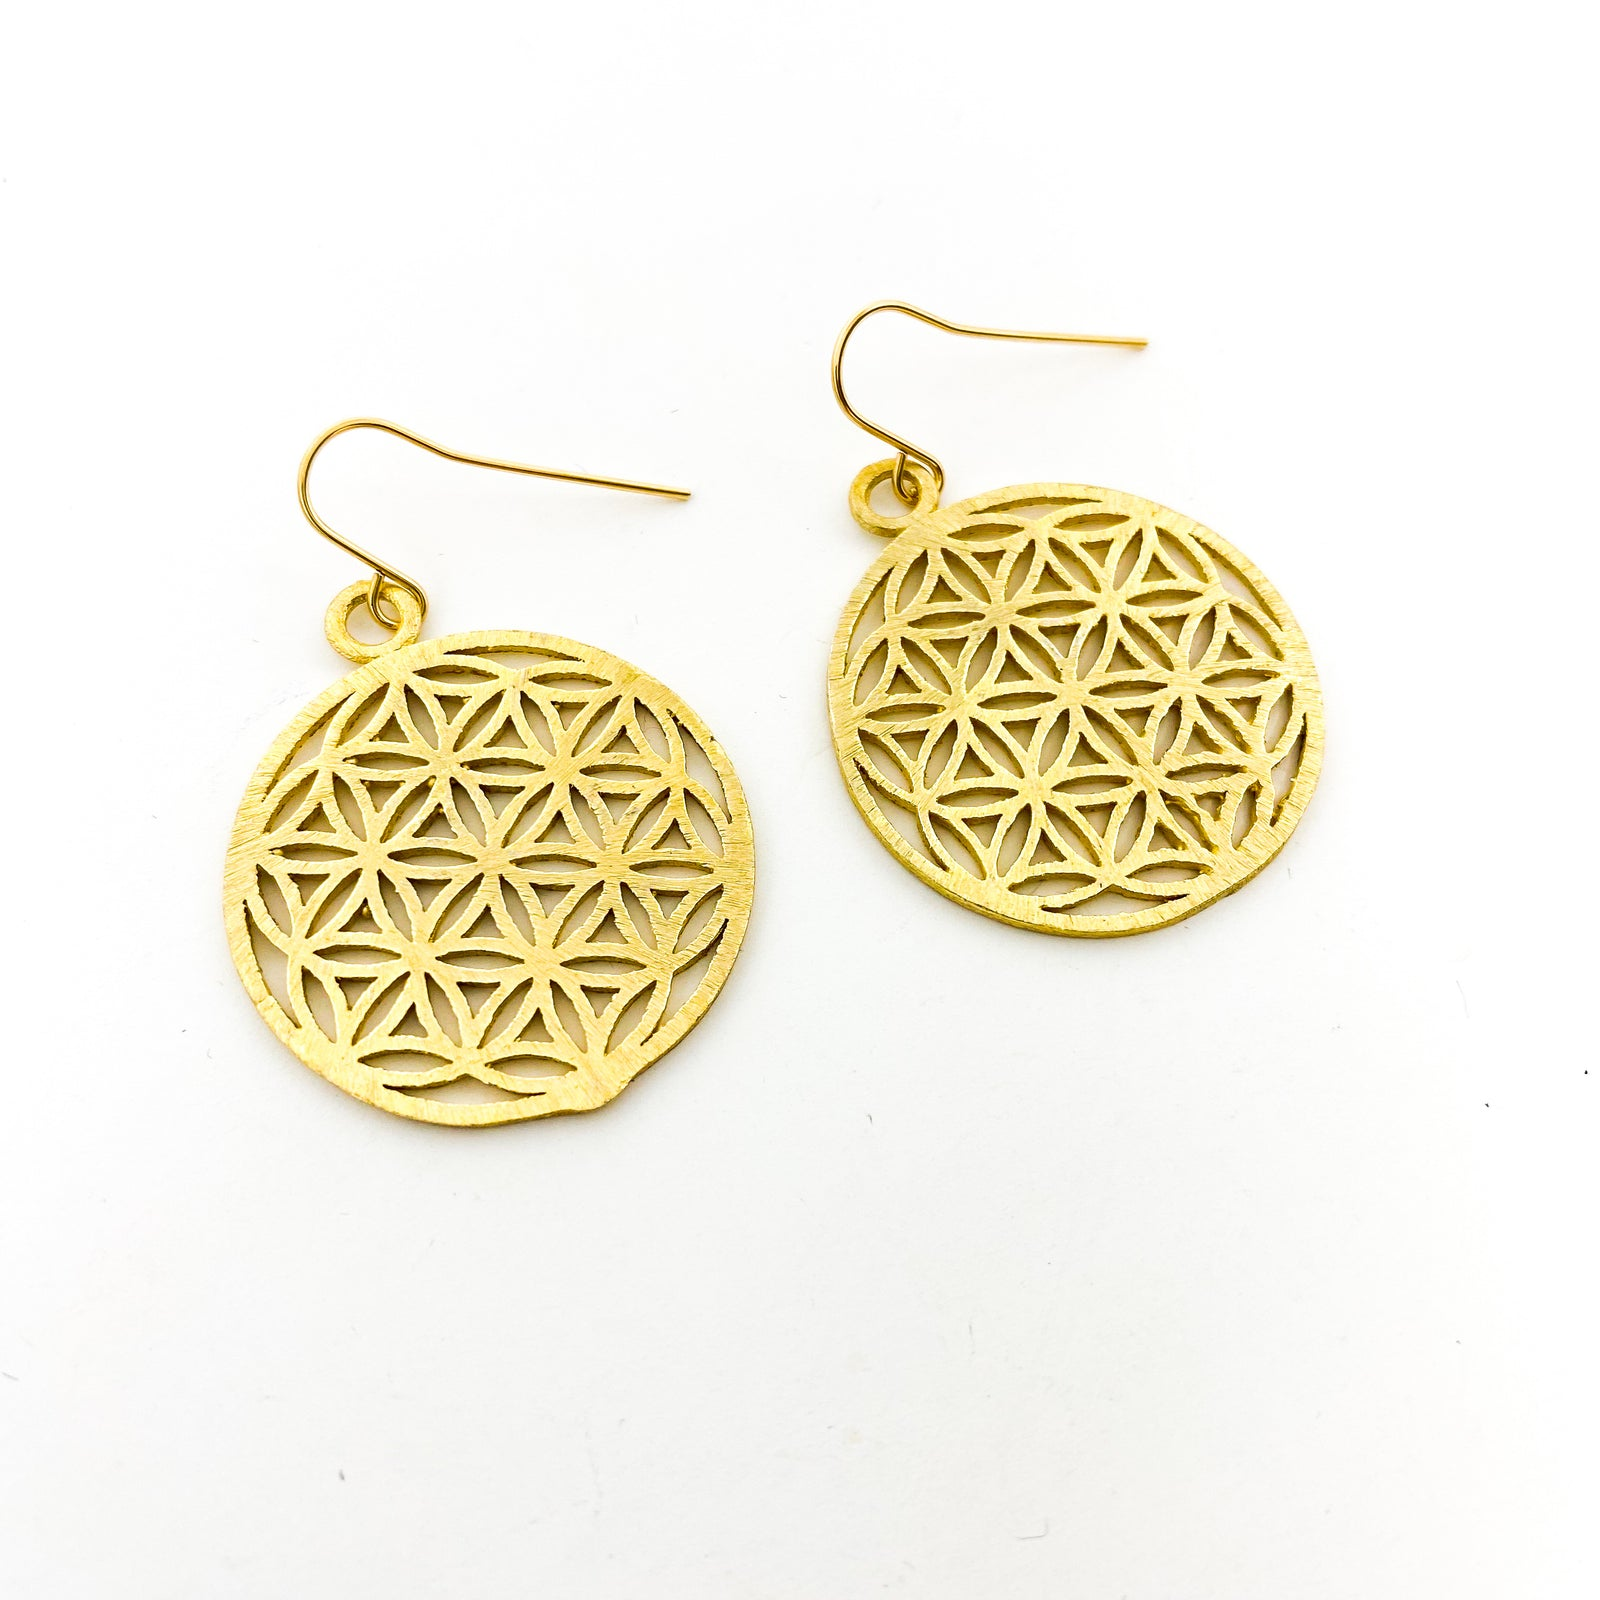 BRUSHED PATTERN SPHERE EARRINGS | 14K GOLD-FILLED